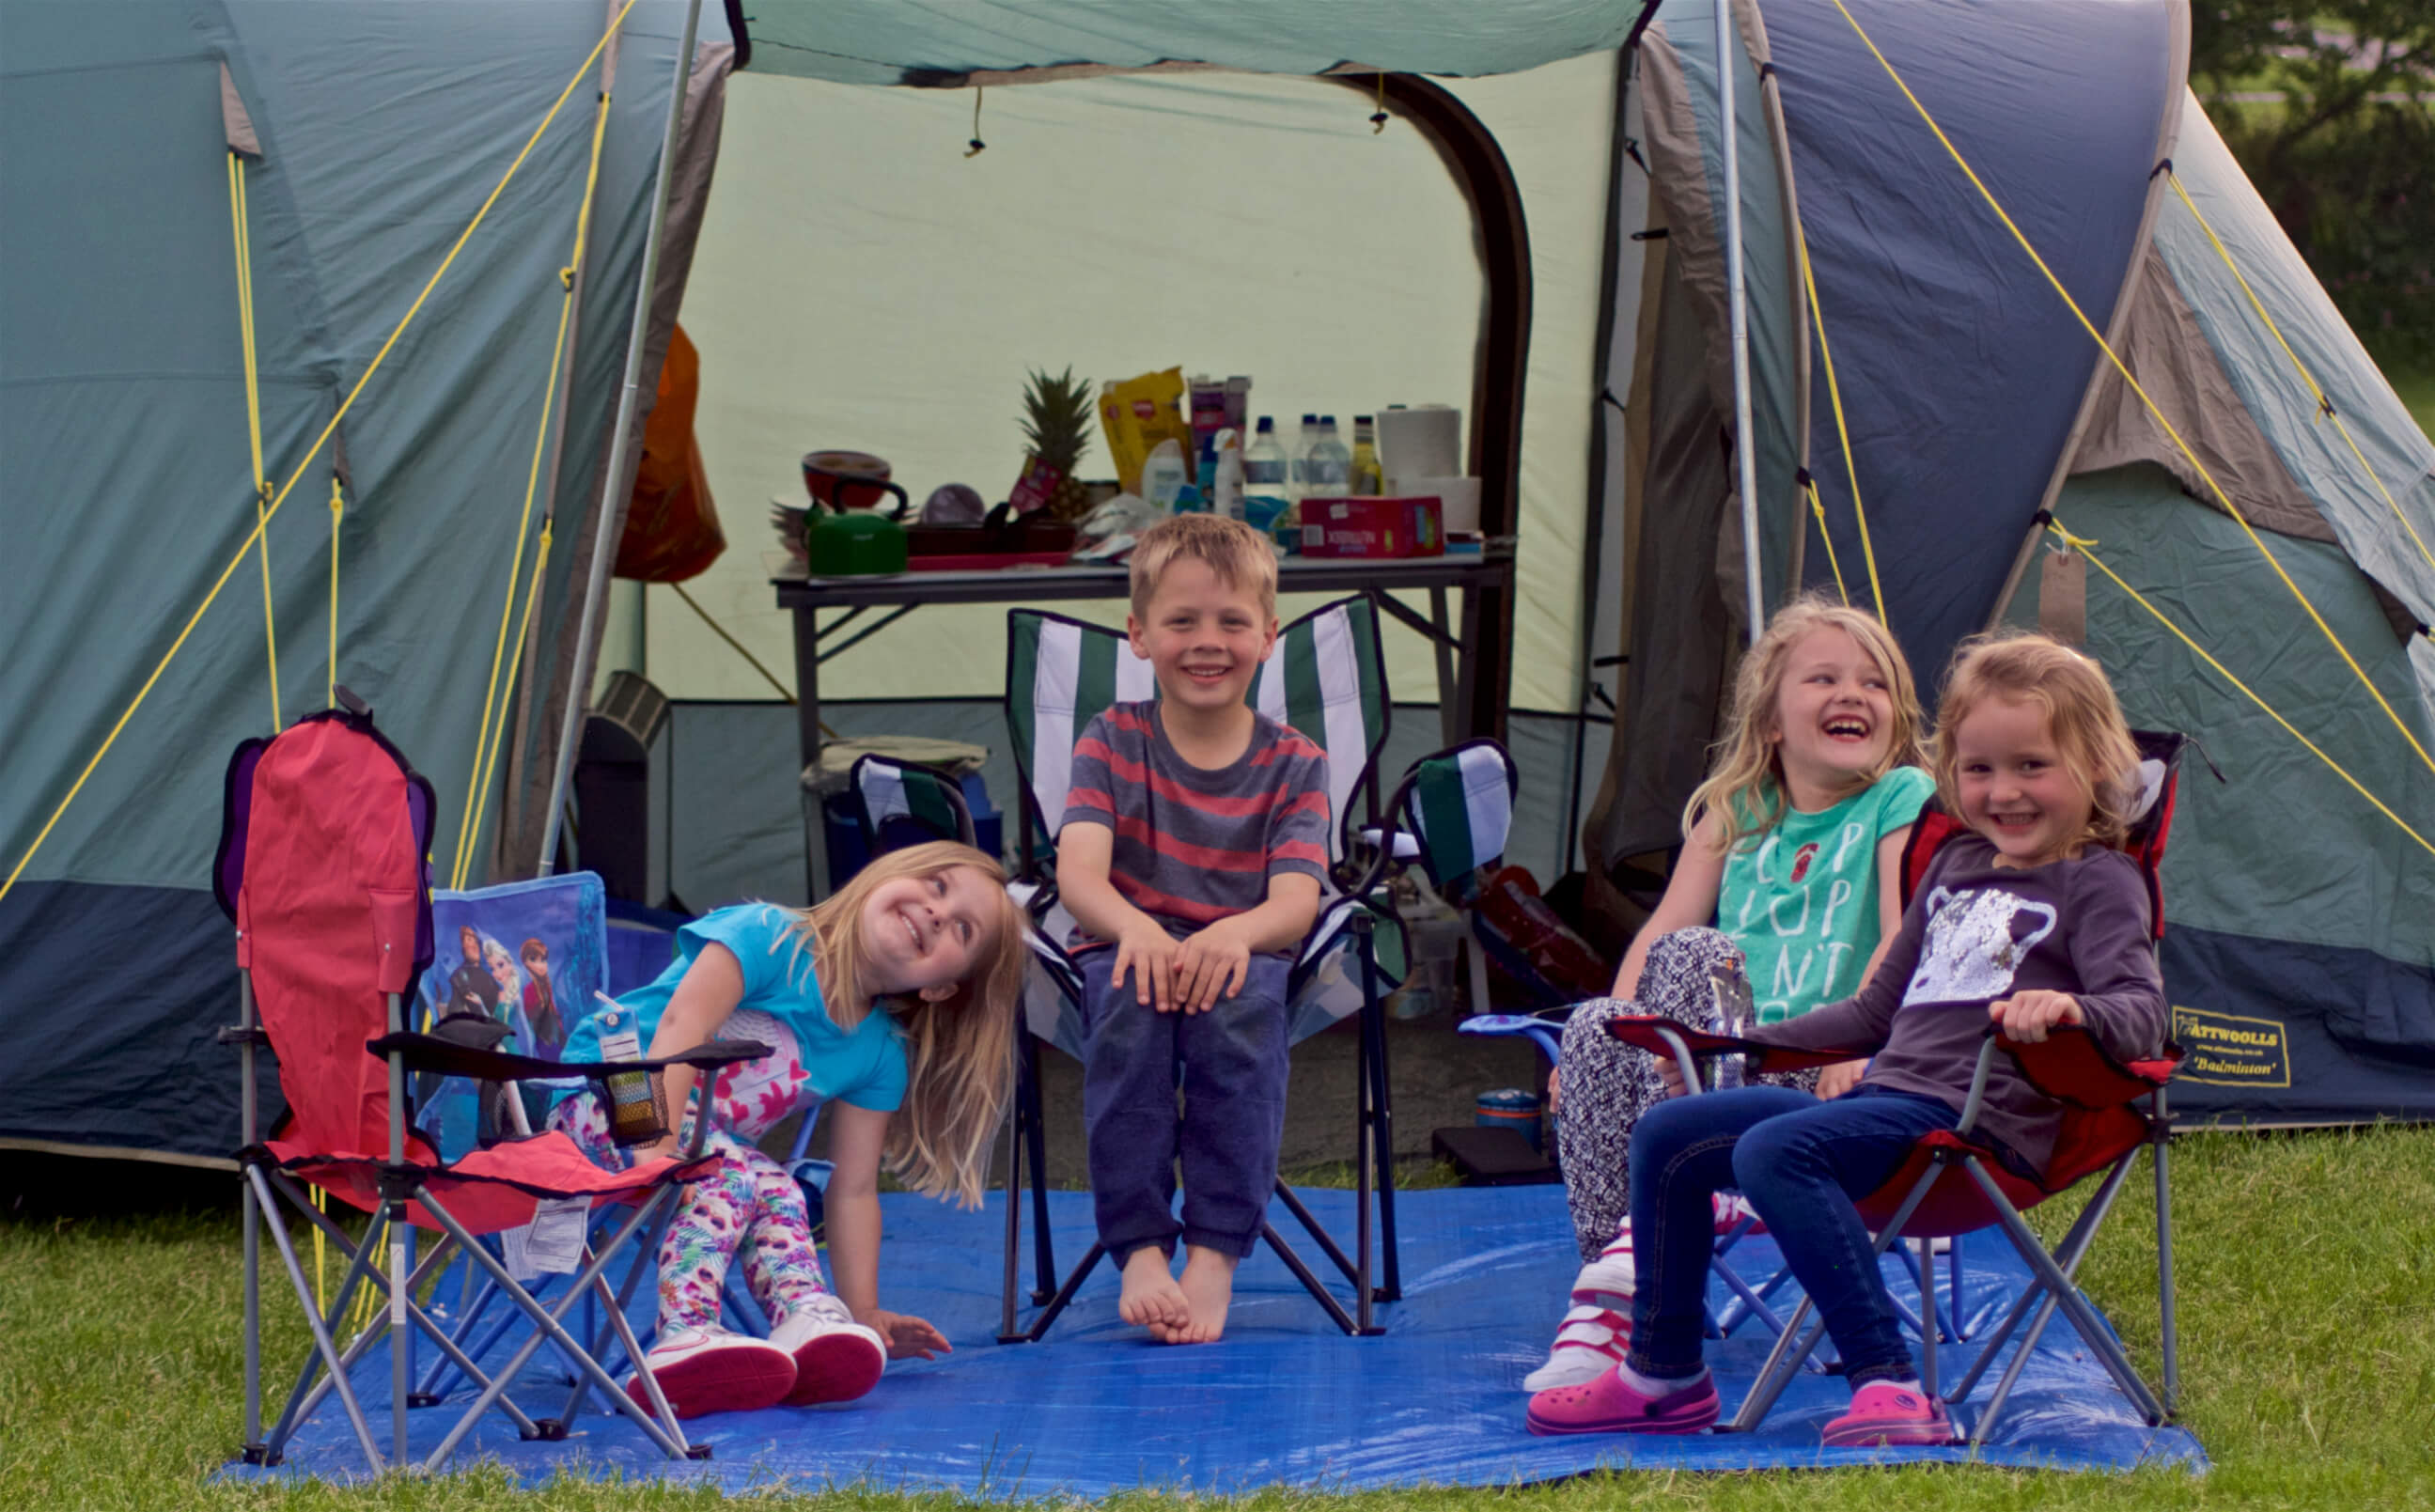 Kids enjoying camping at Stowford Farm Meadows